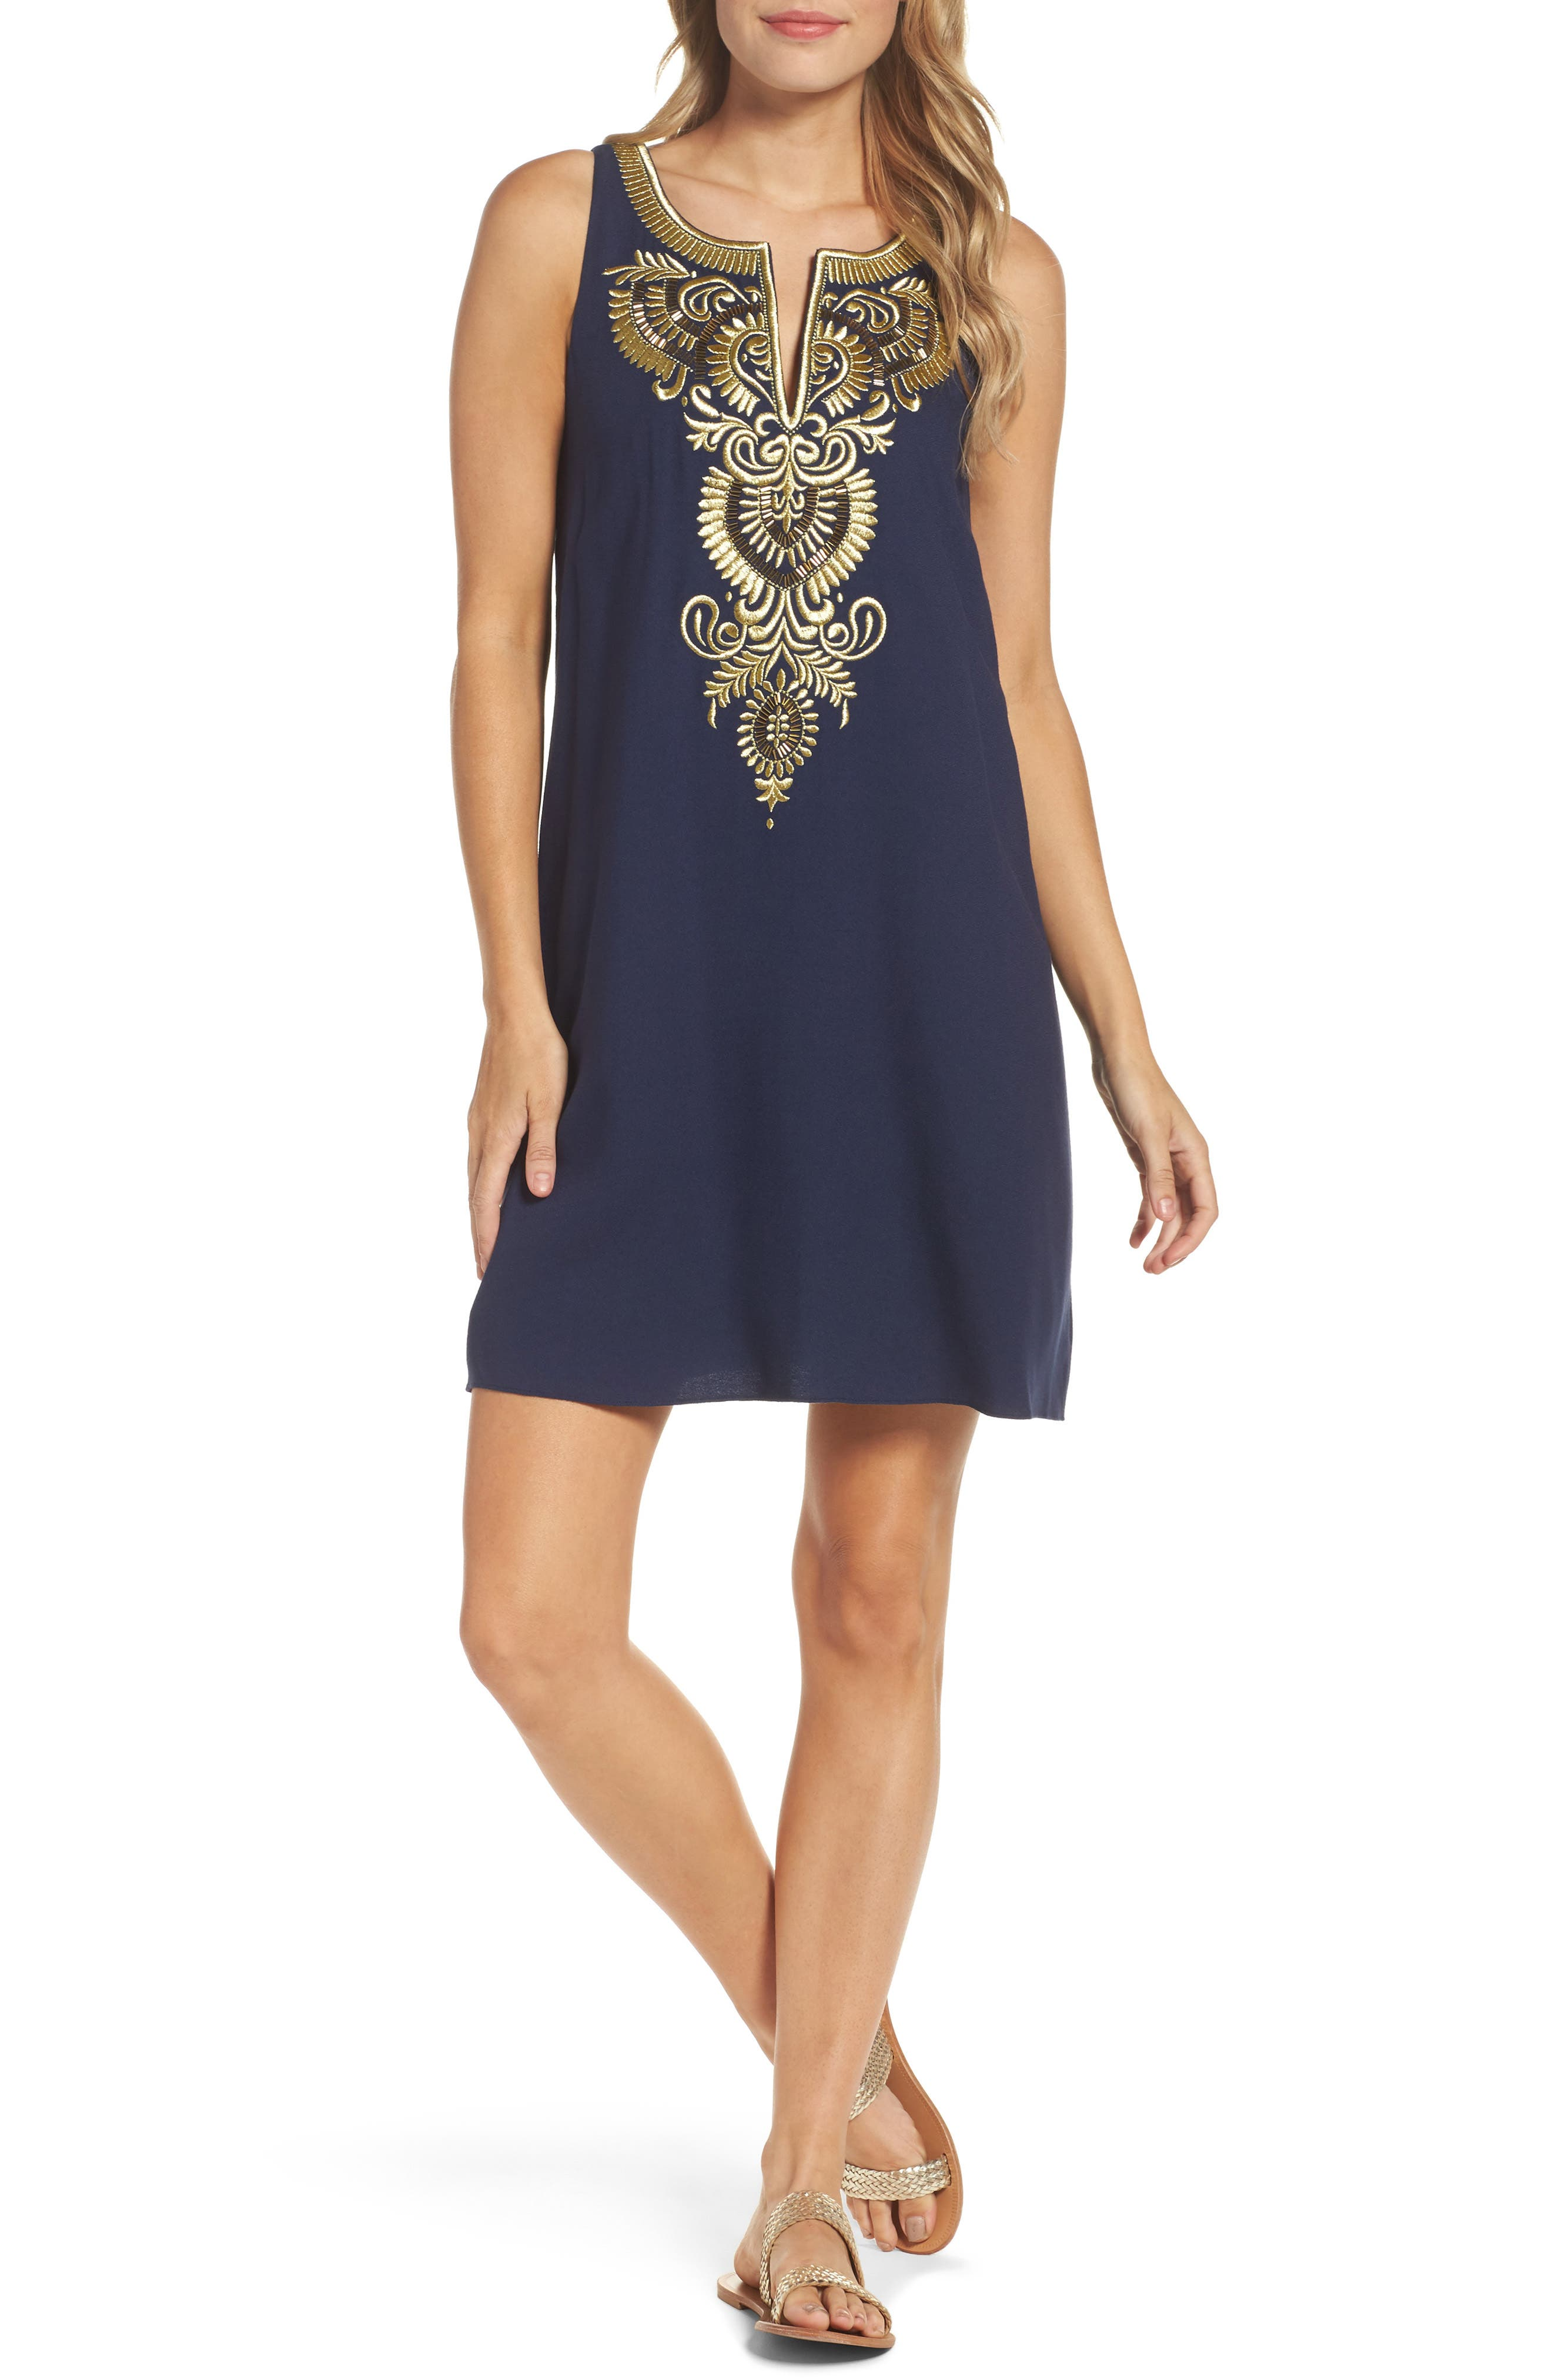 Aubra Embroidered Shift Dress,                         Main,                         color, True Navy